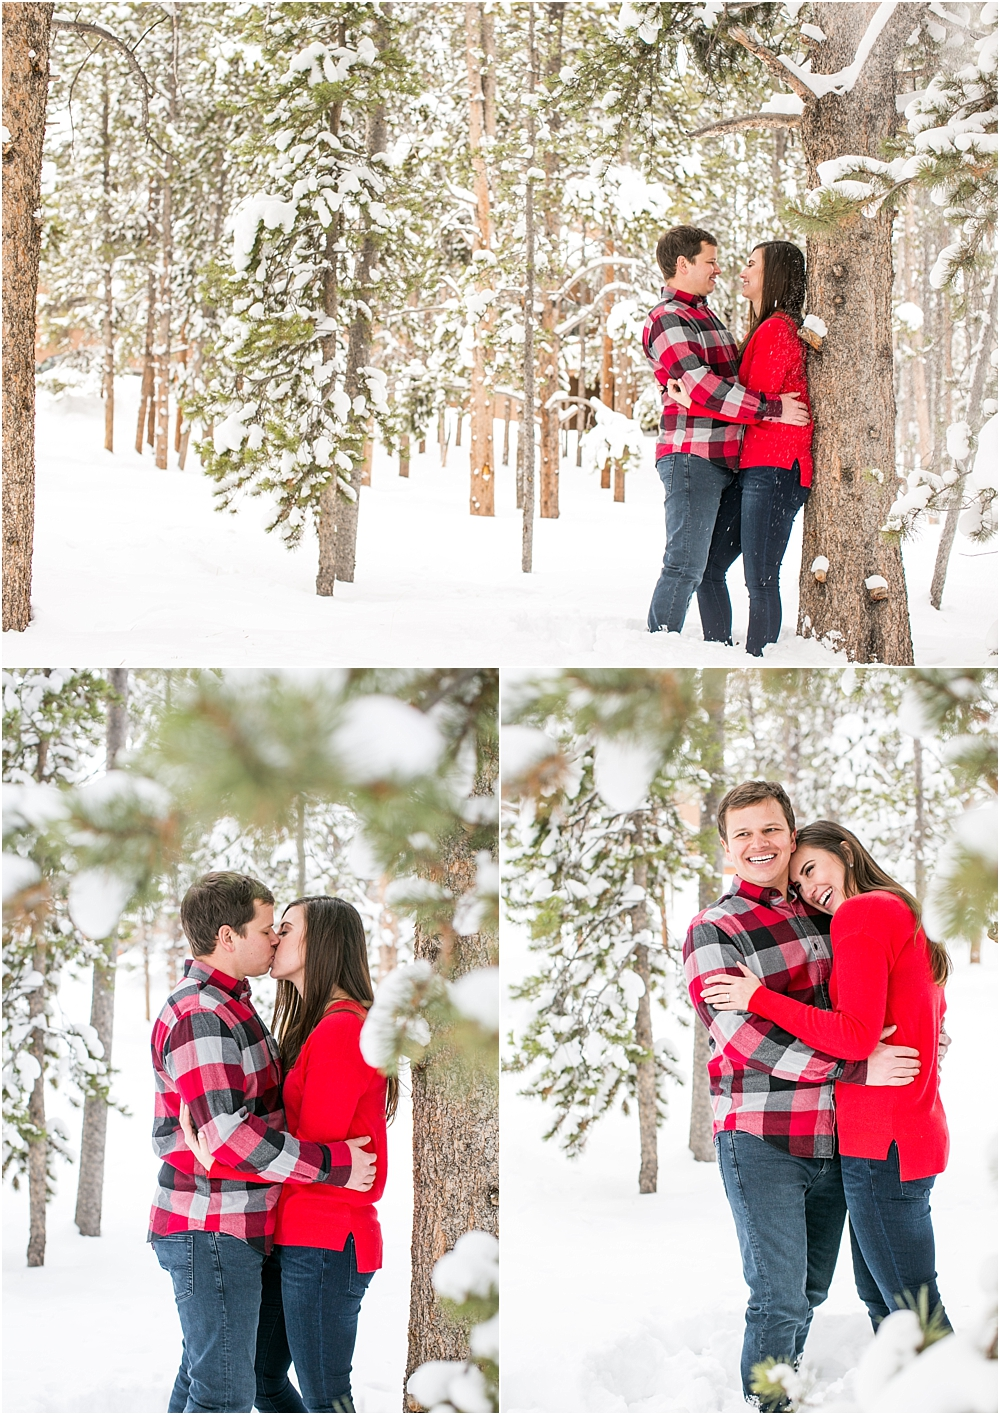 allison benny breckenridge colorado destination engagement session colorado wedding photographers living radiant photos_0008.jpg